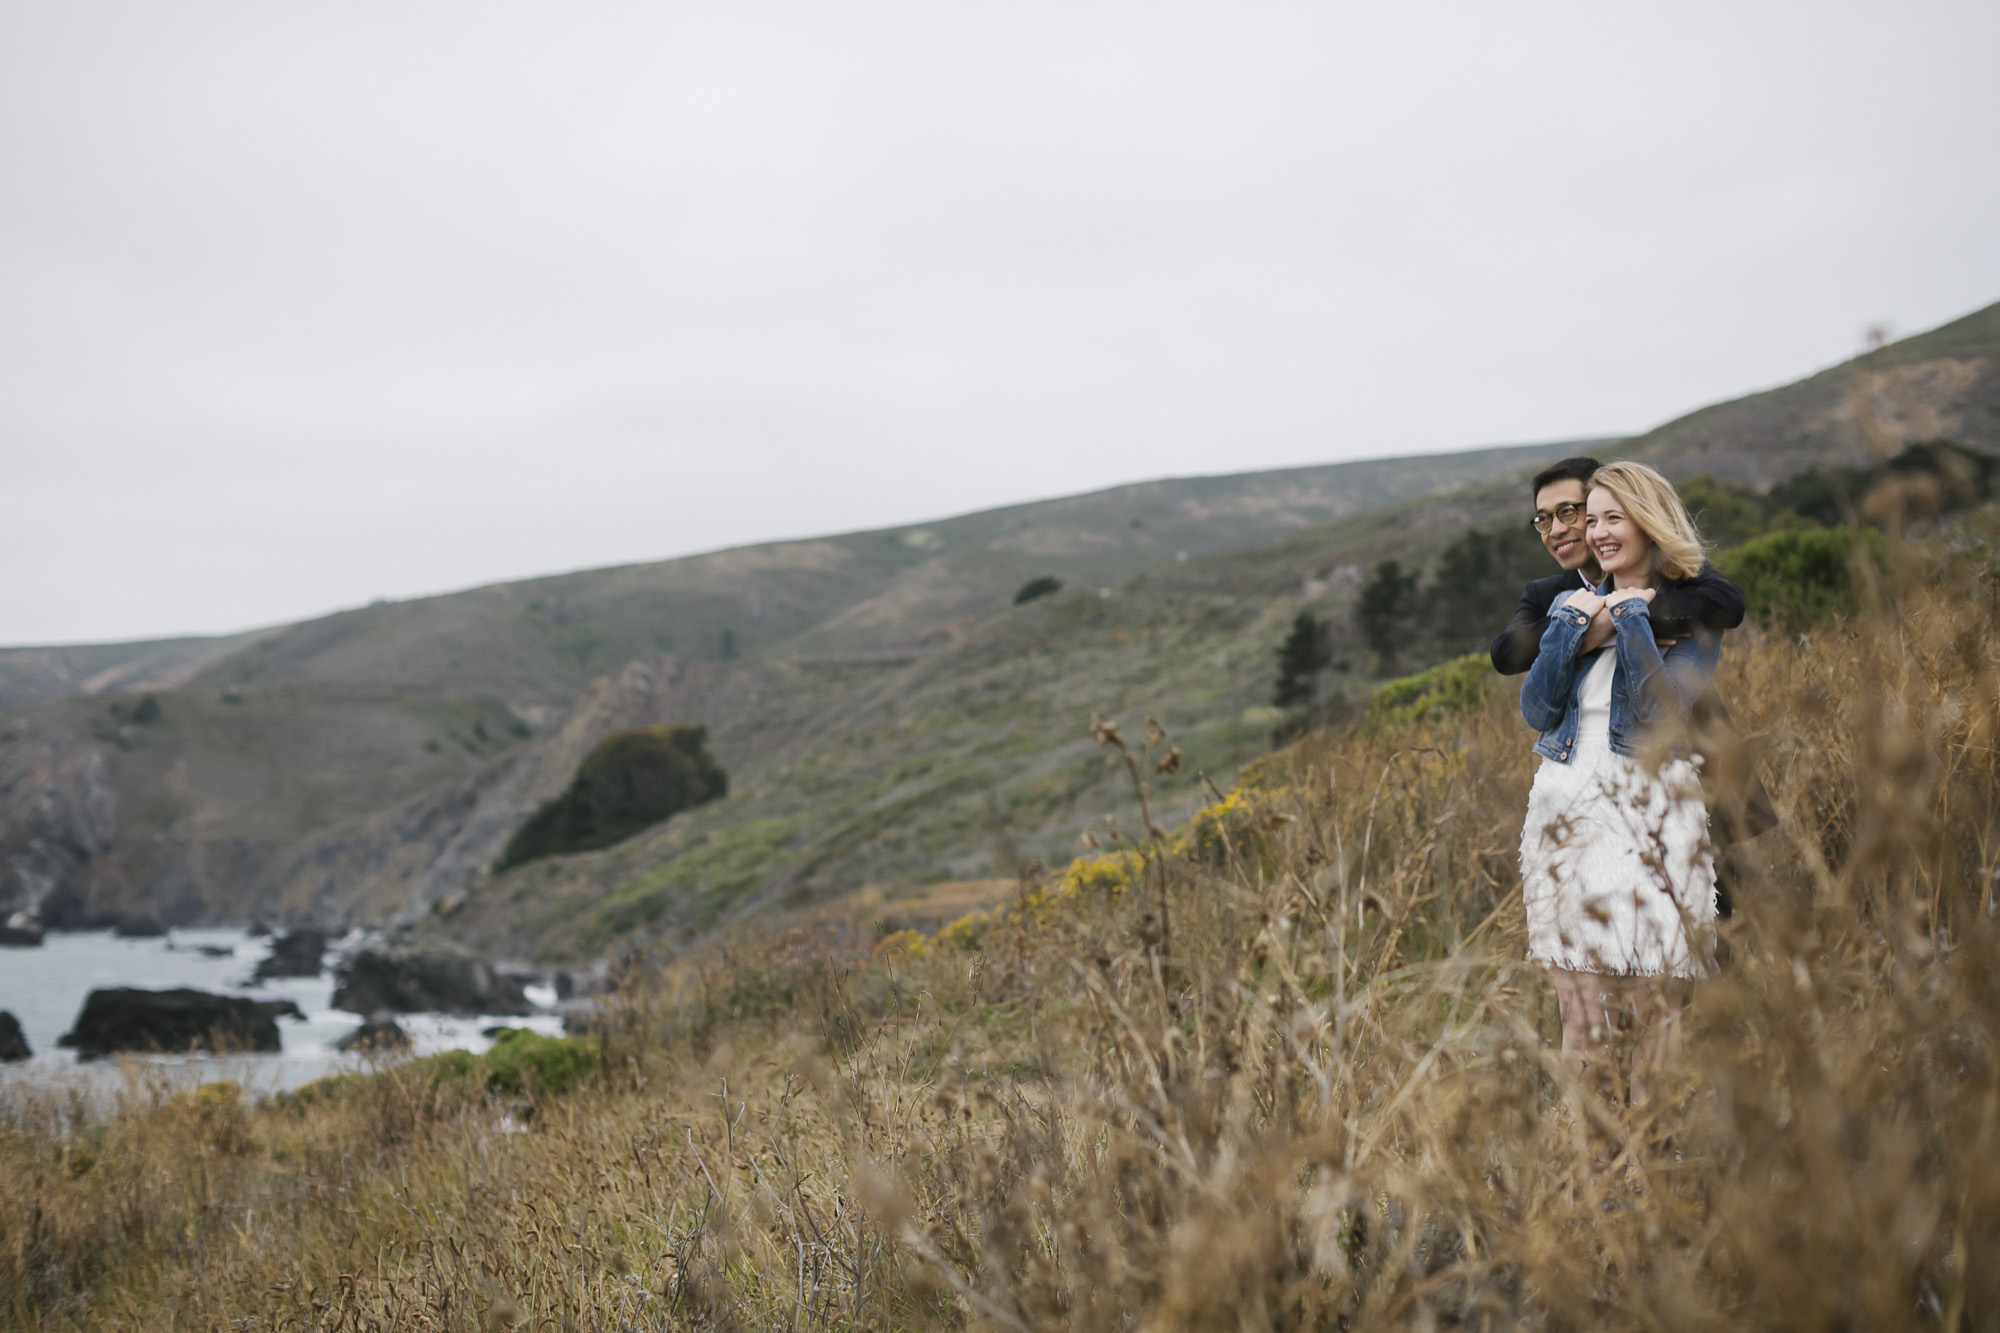 On a coastal hillside, a man hugs his fiancé from behind while looking out at the ocean